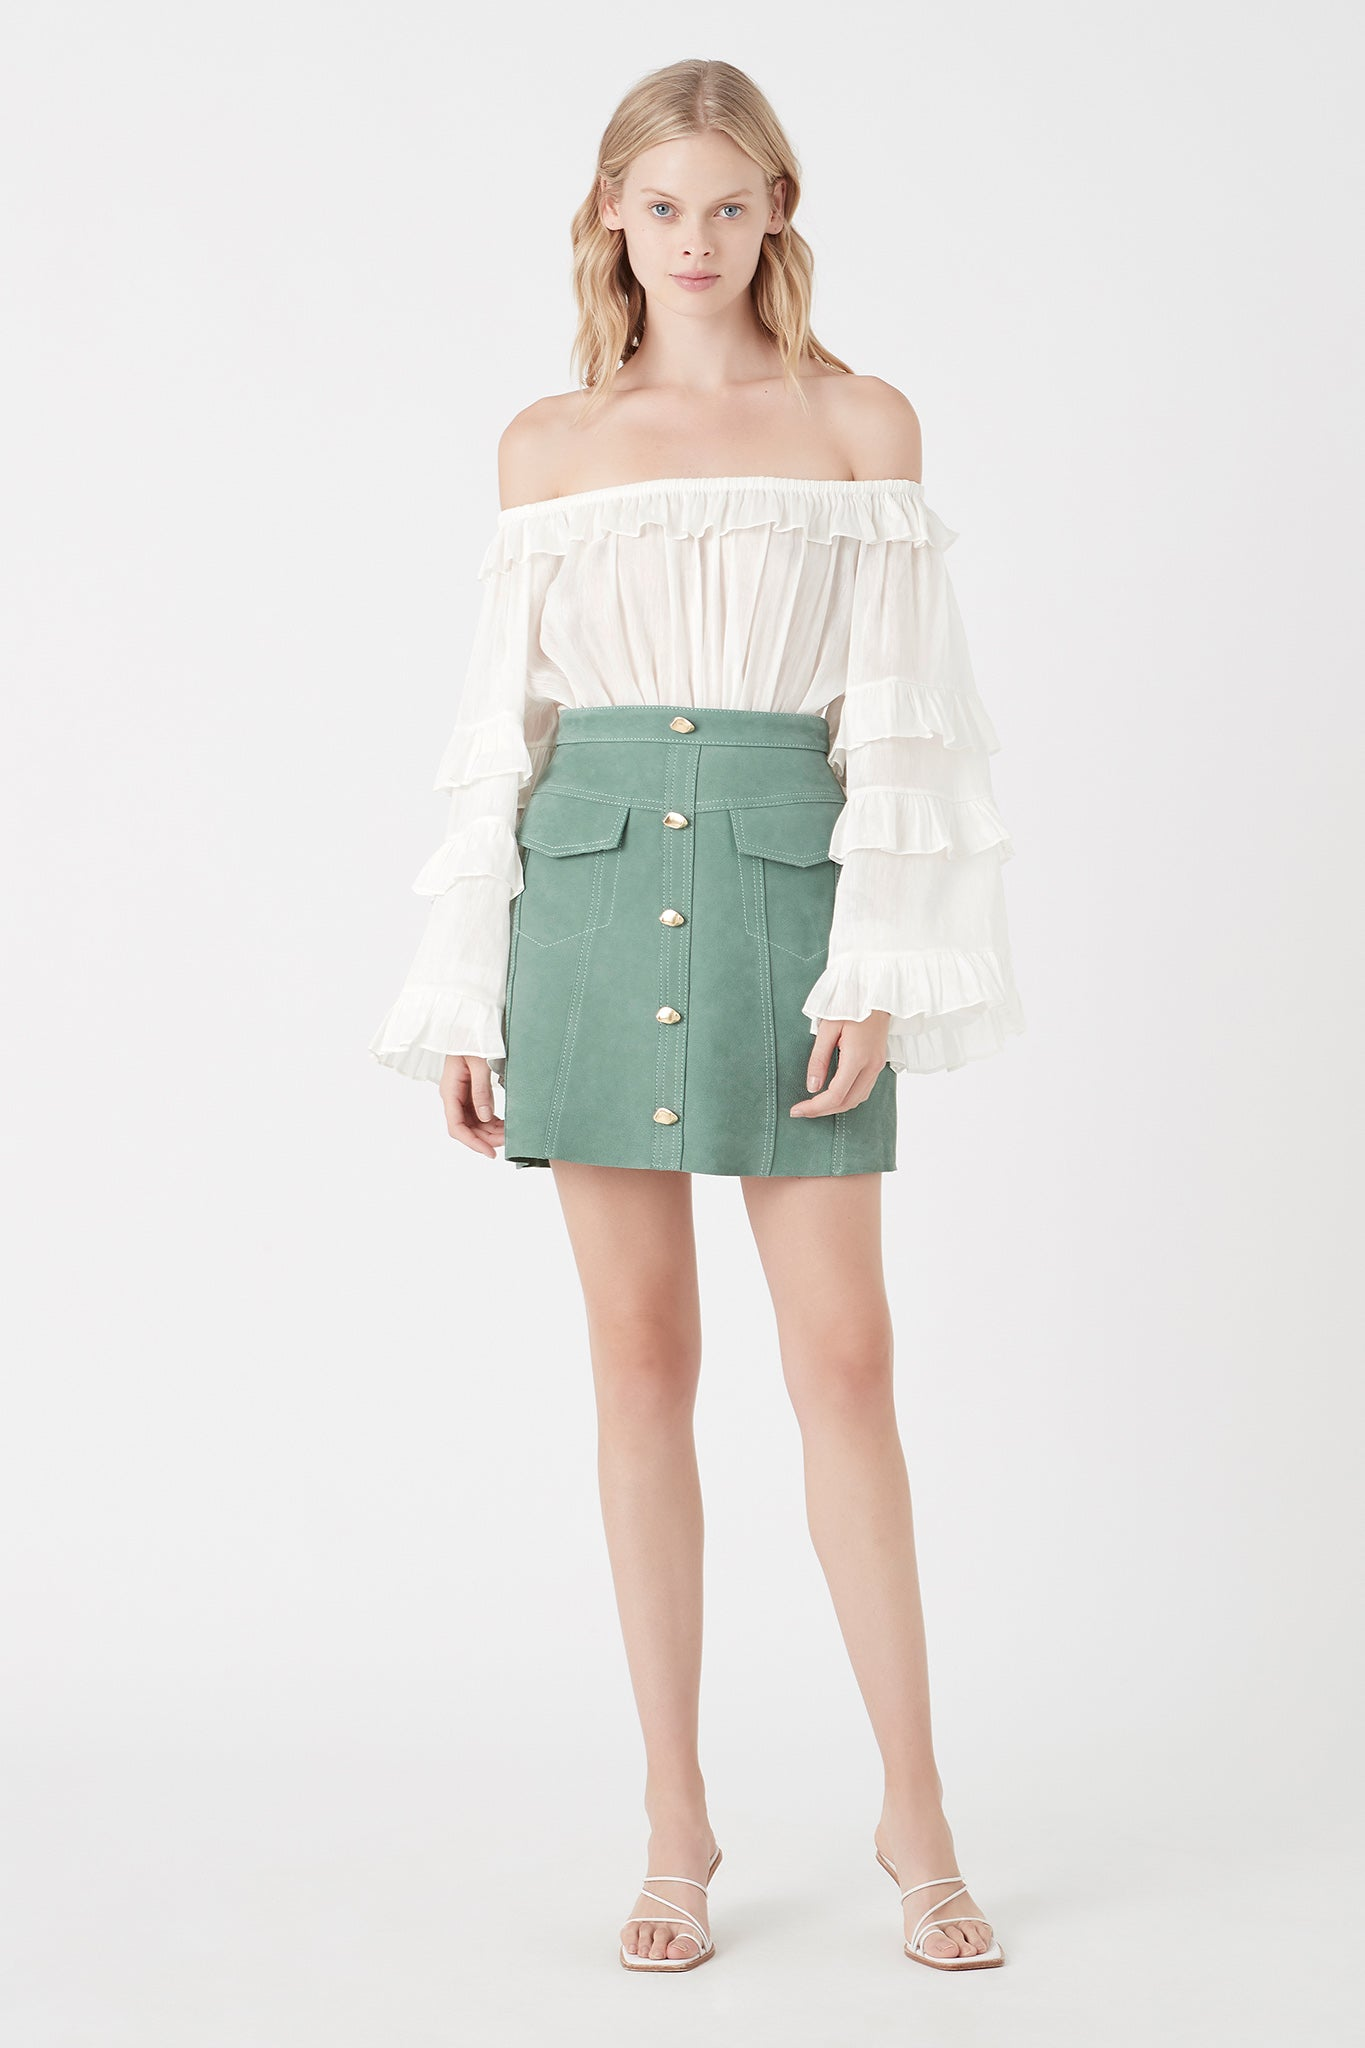 Eucalypt Mira Leather Mini Skirt Outfit View